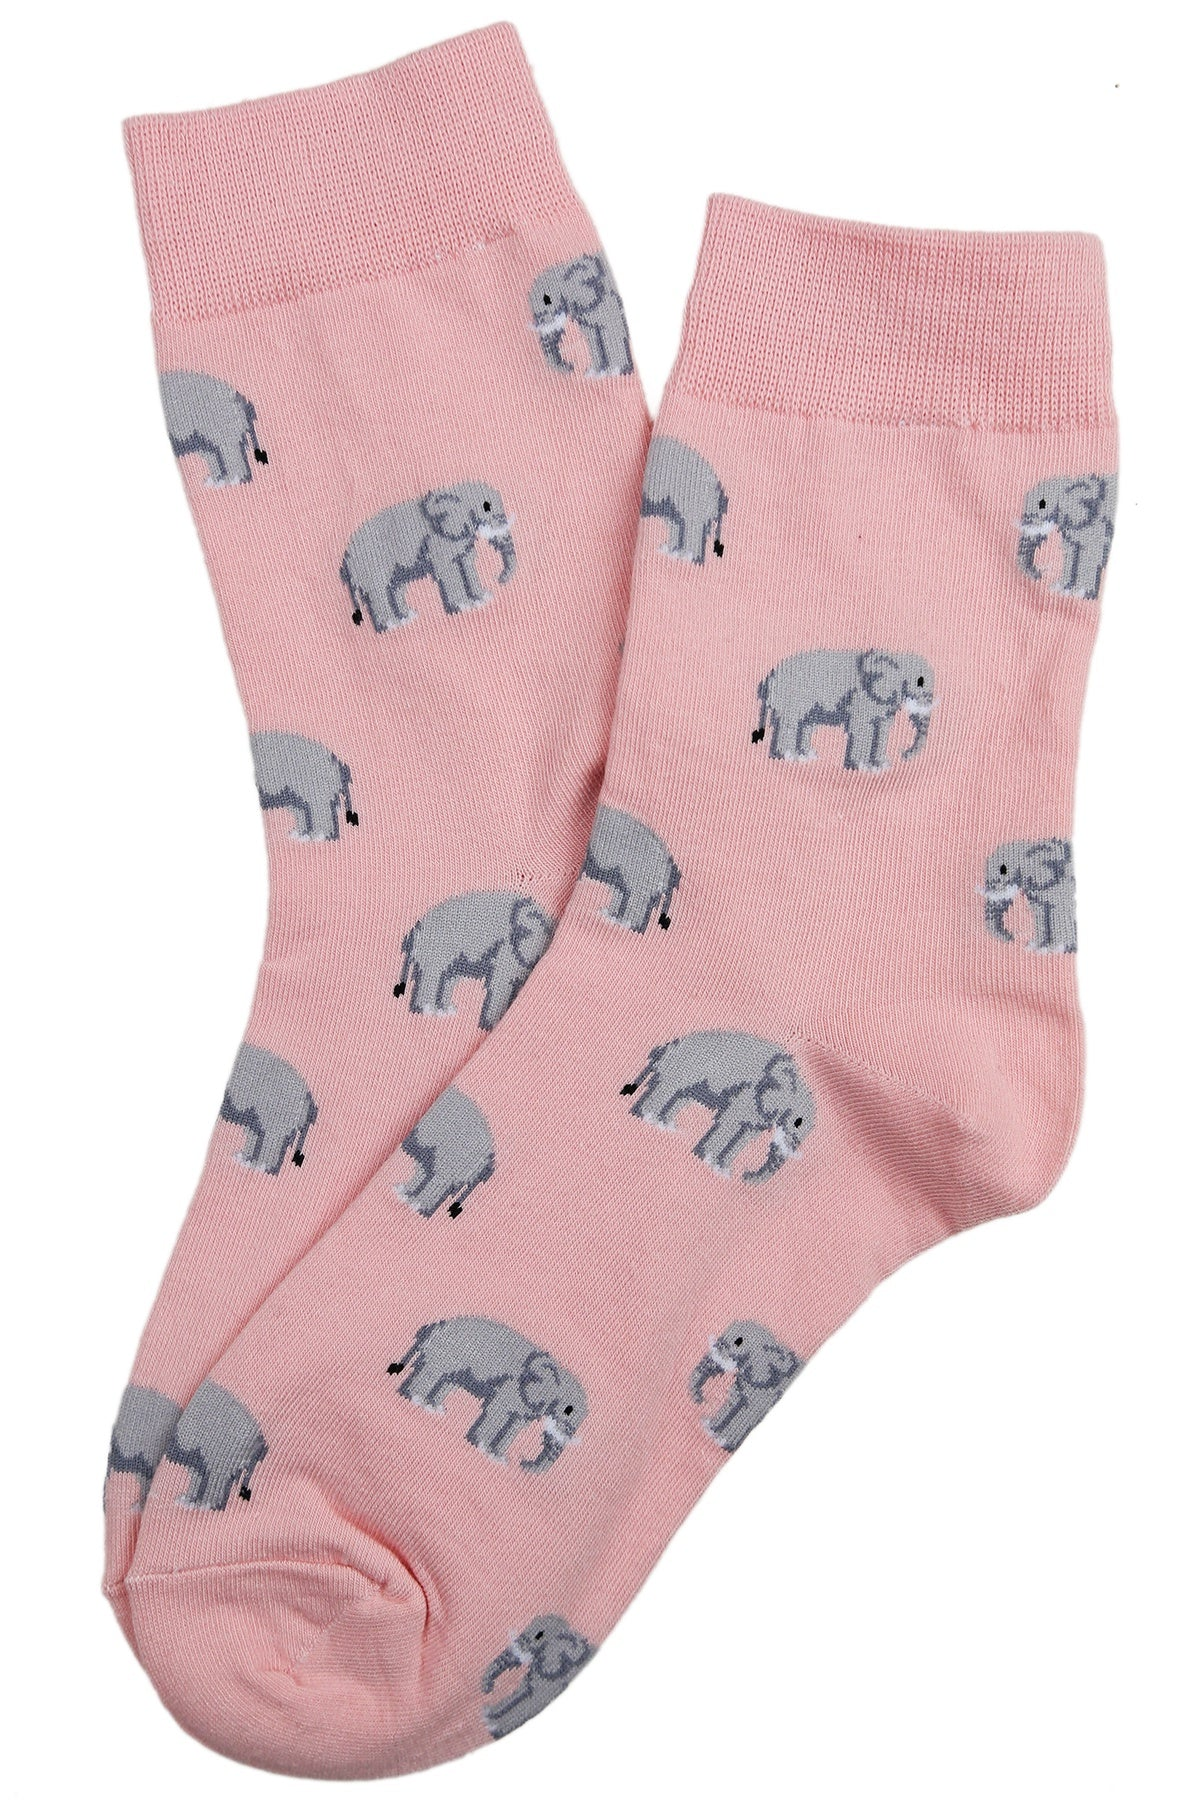 Edward the Elephant Cotton Socks Pink